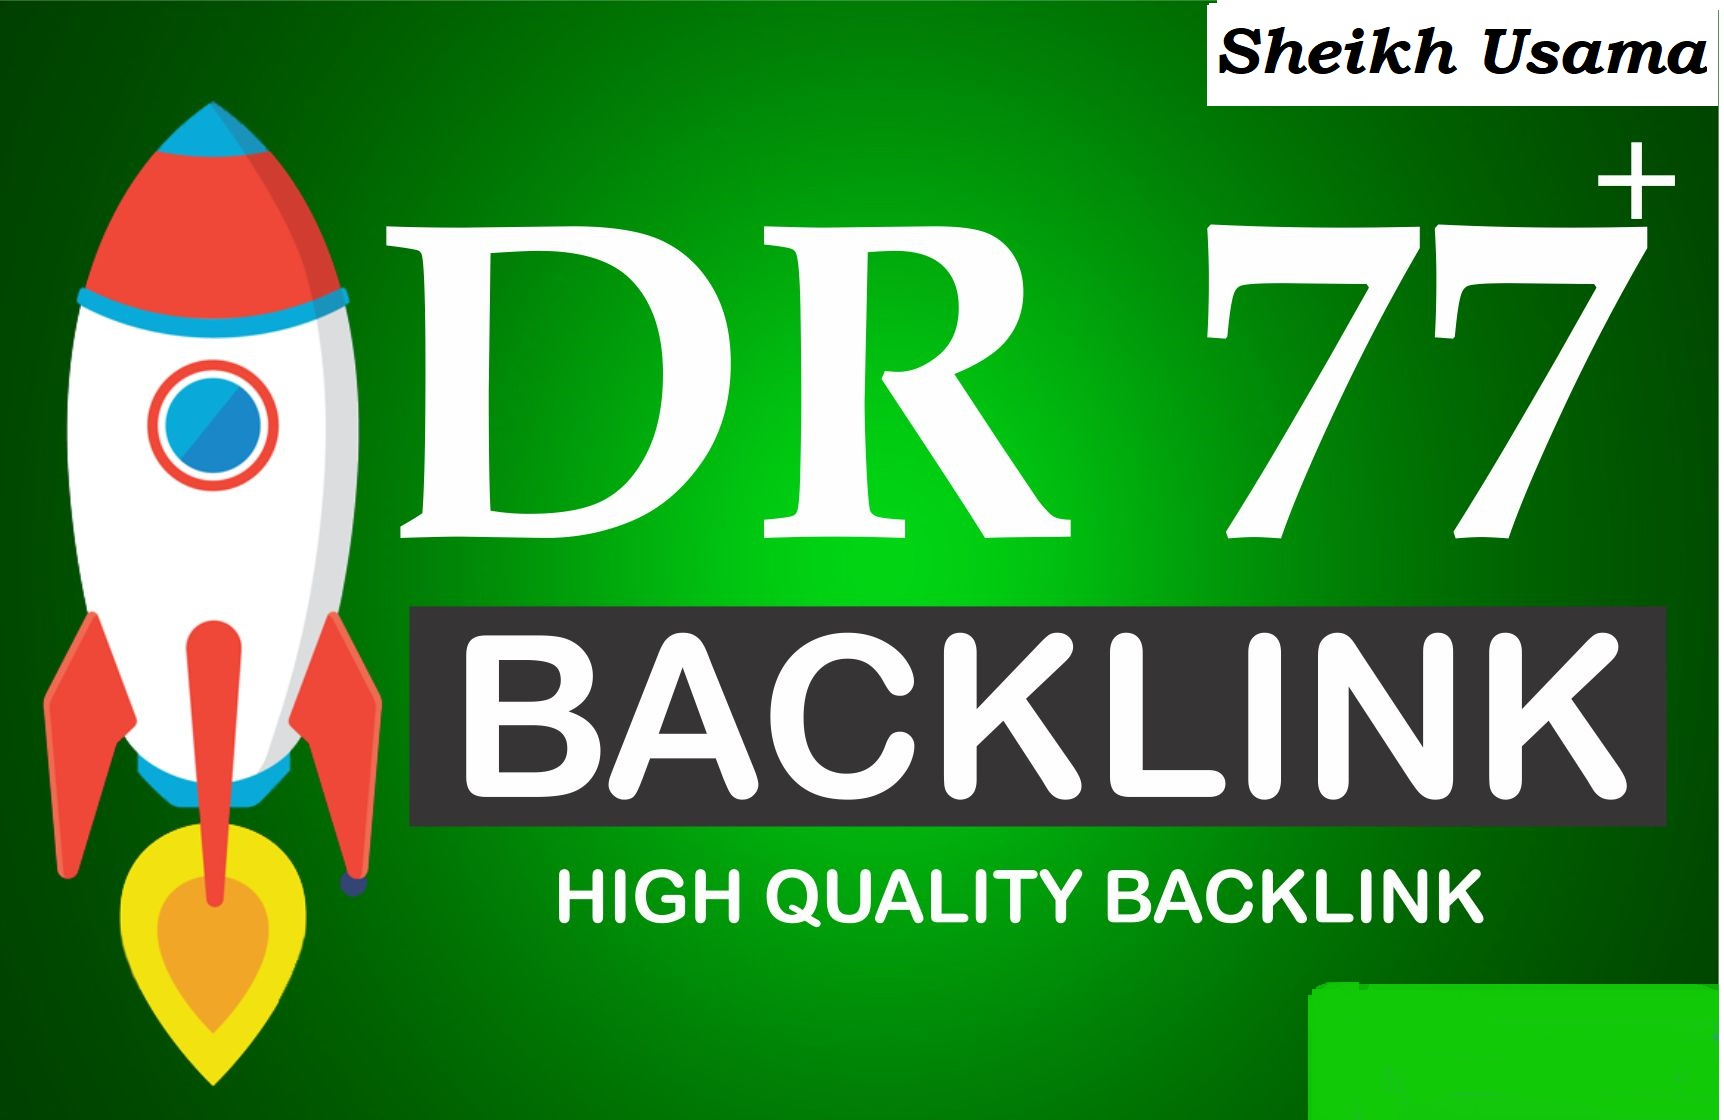 i will do 1 DR 77+ HOMEPAGE DOFOLLOW PBN BACKLINK